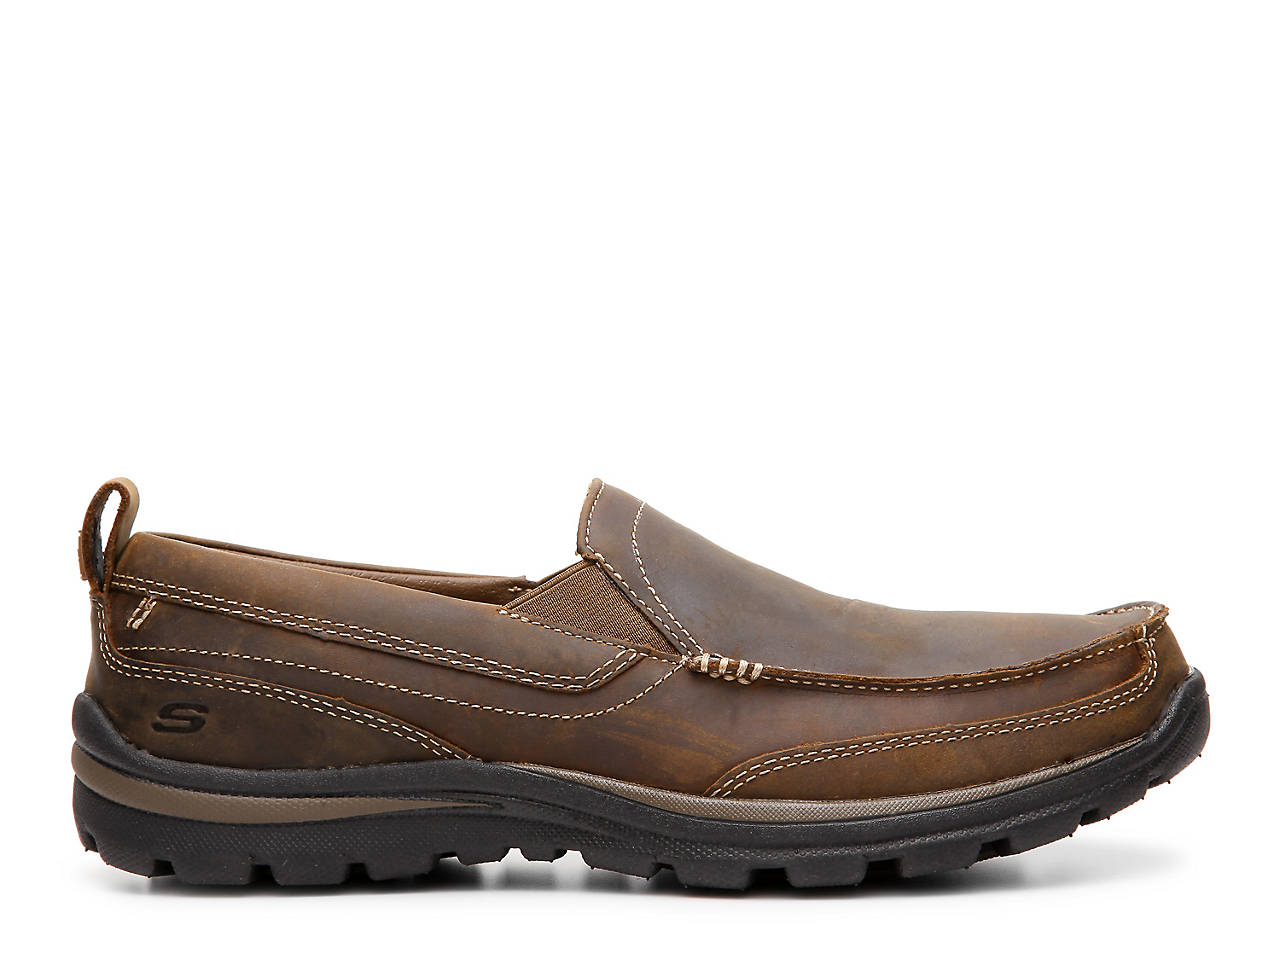 a7d96c2c7a0 Skechers Relaxed Fit Superior Gains Slip-On Men s Shoes